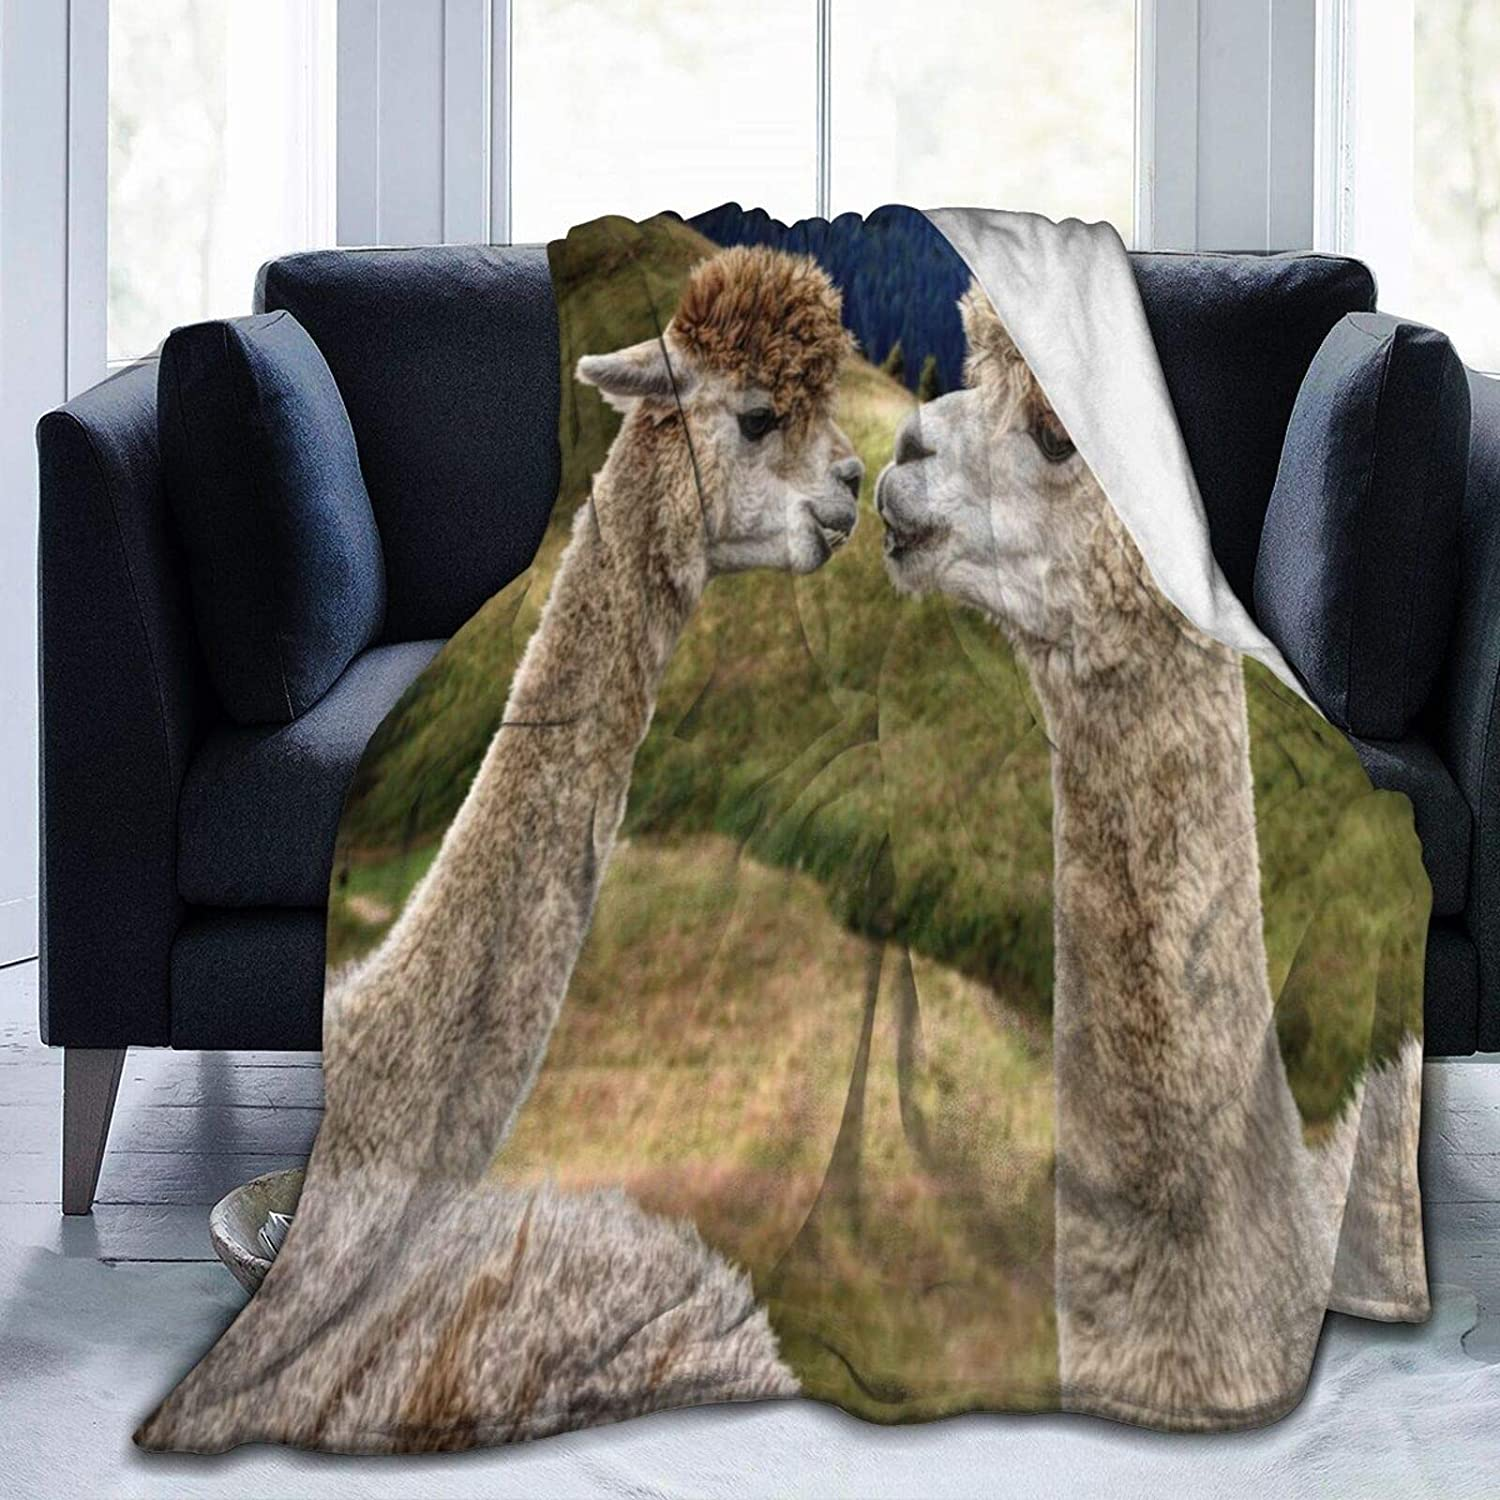 Fuzzy Throw Blanket Plush Fleece Blankets for To Al store sold out. Unisex Adults